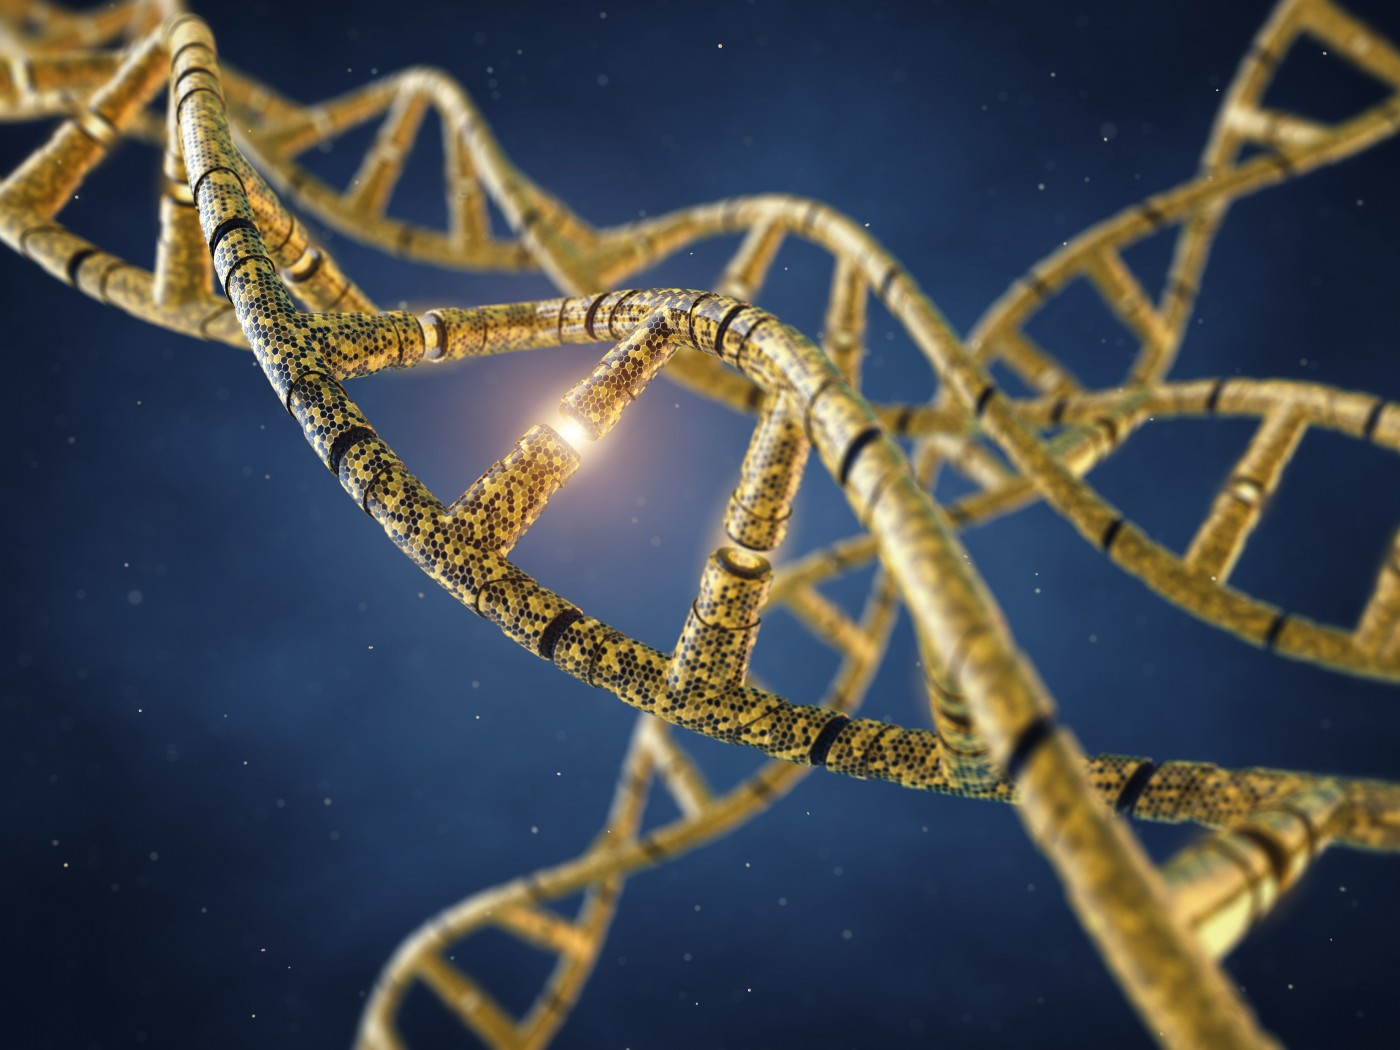 SMA gene therapy trial